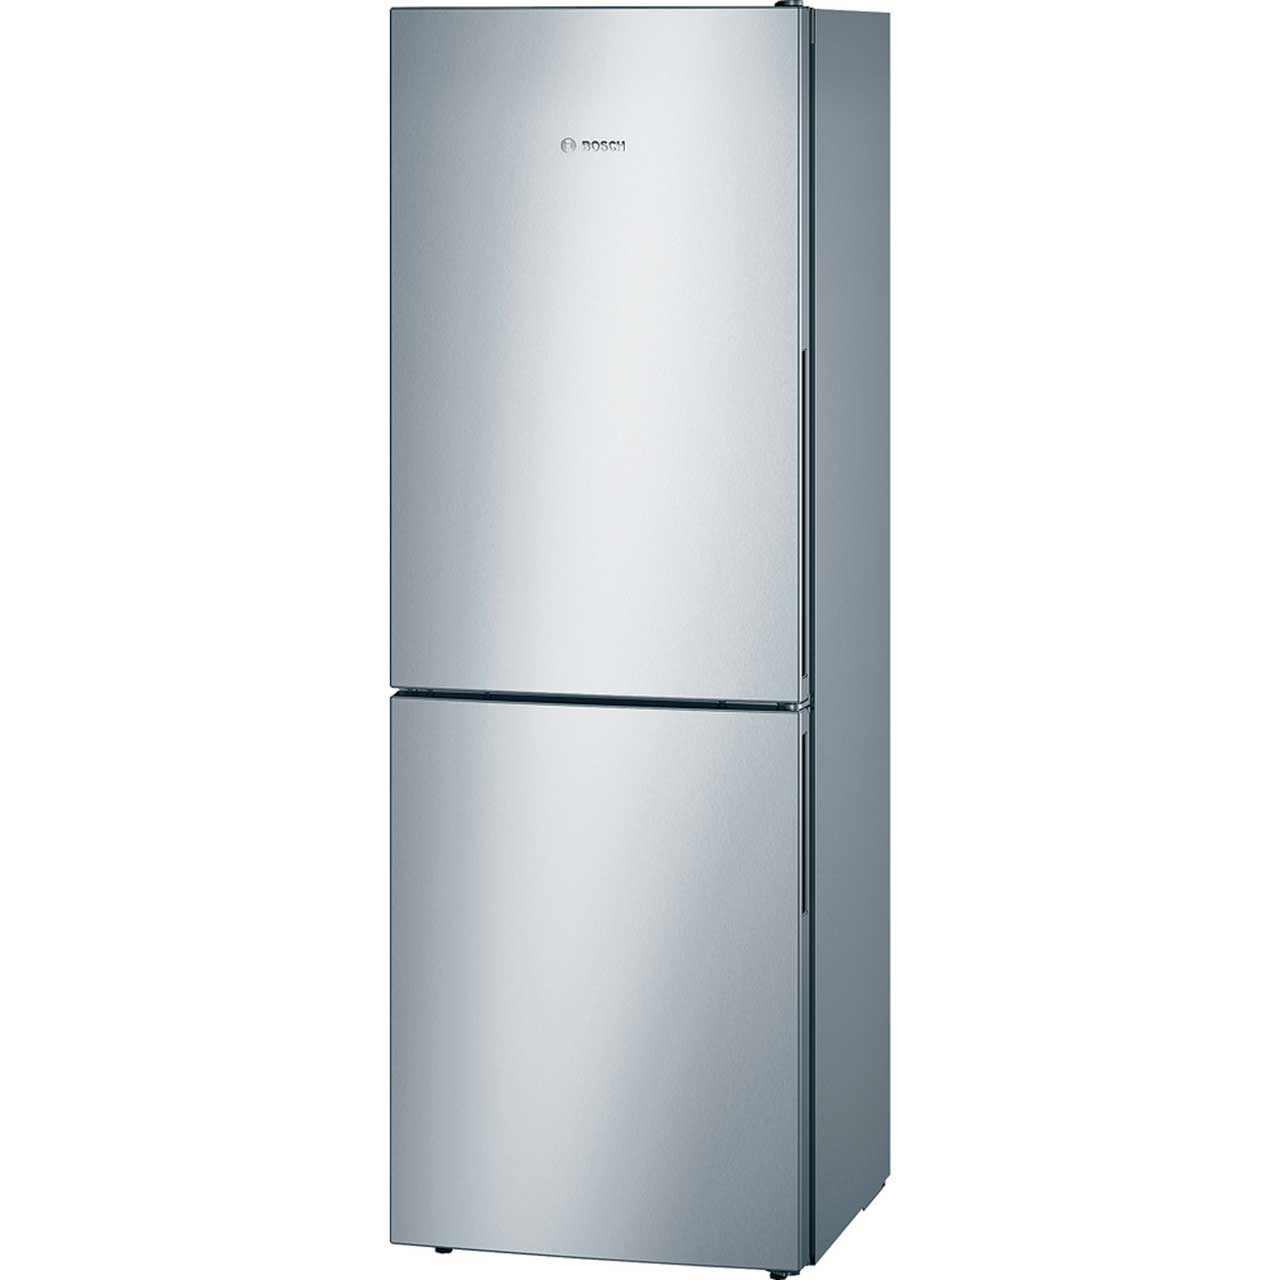 kgv33vl31g ix bosch fridge freezer fast freeze. Black Bedroom Furniture Sets. Home Design Ideas